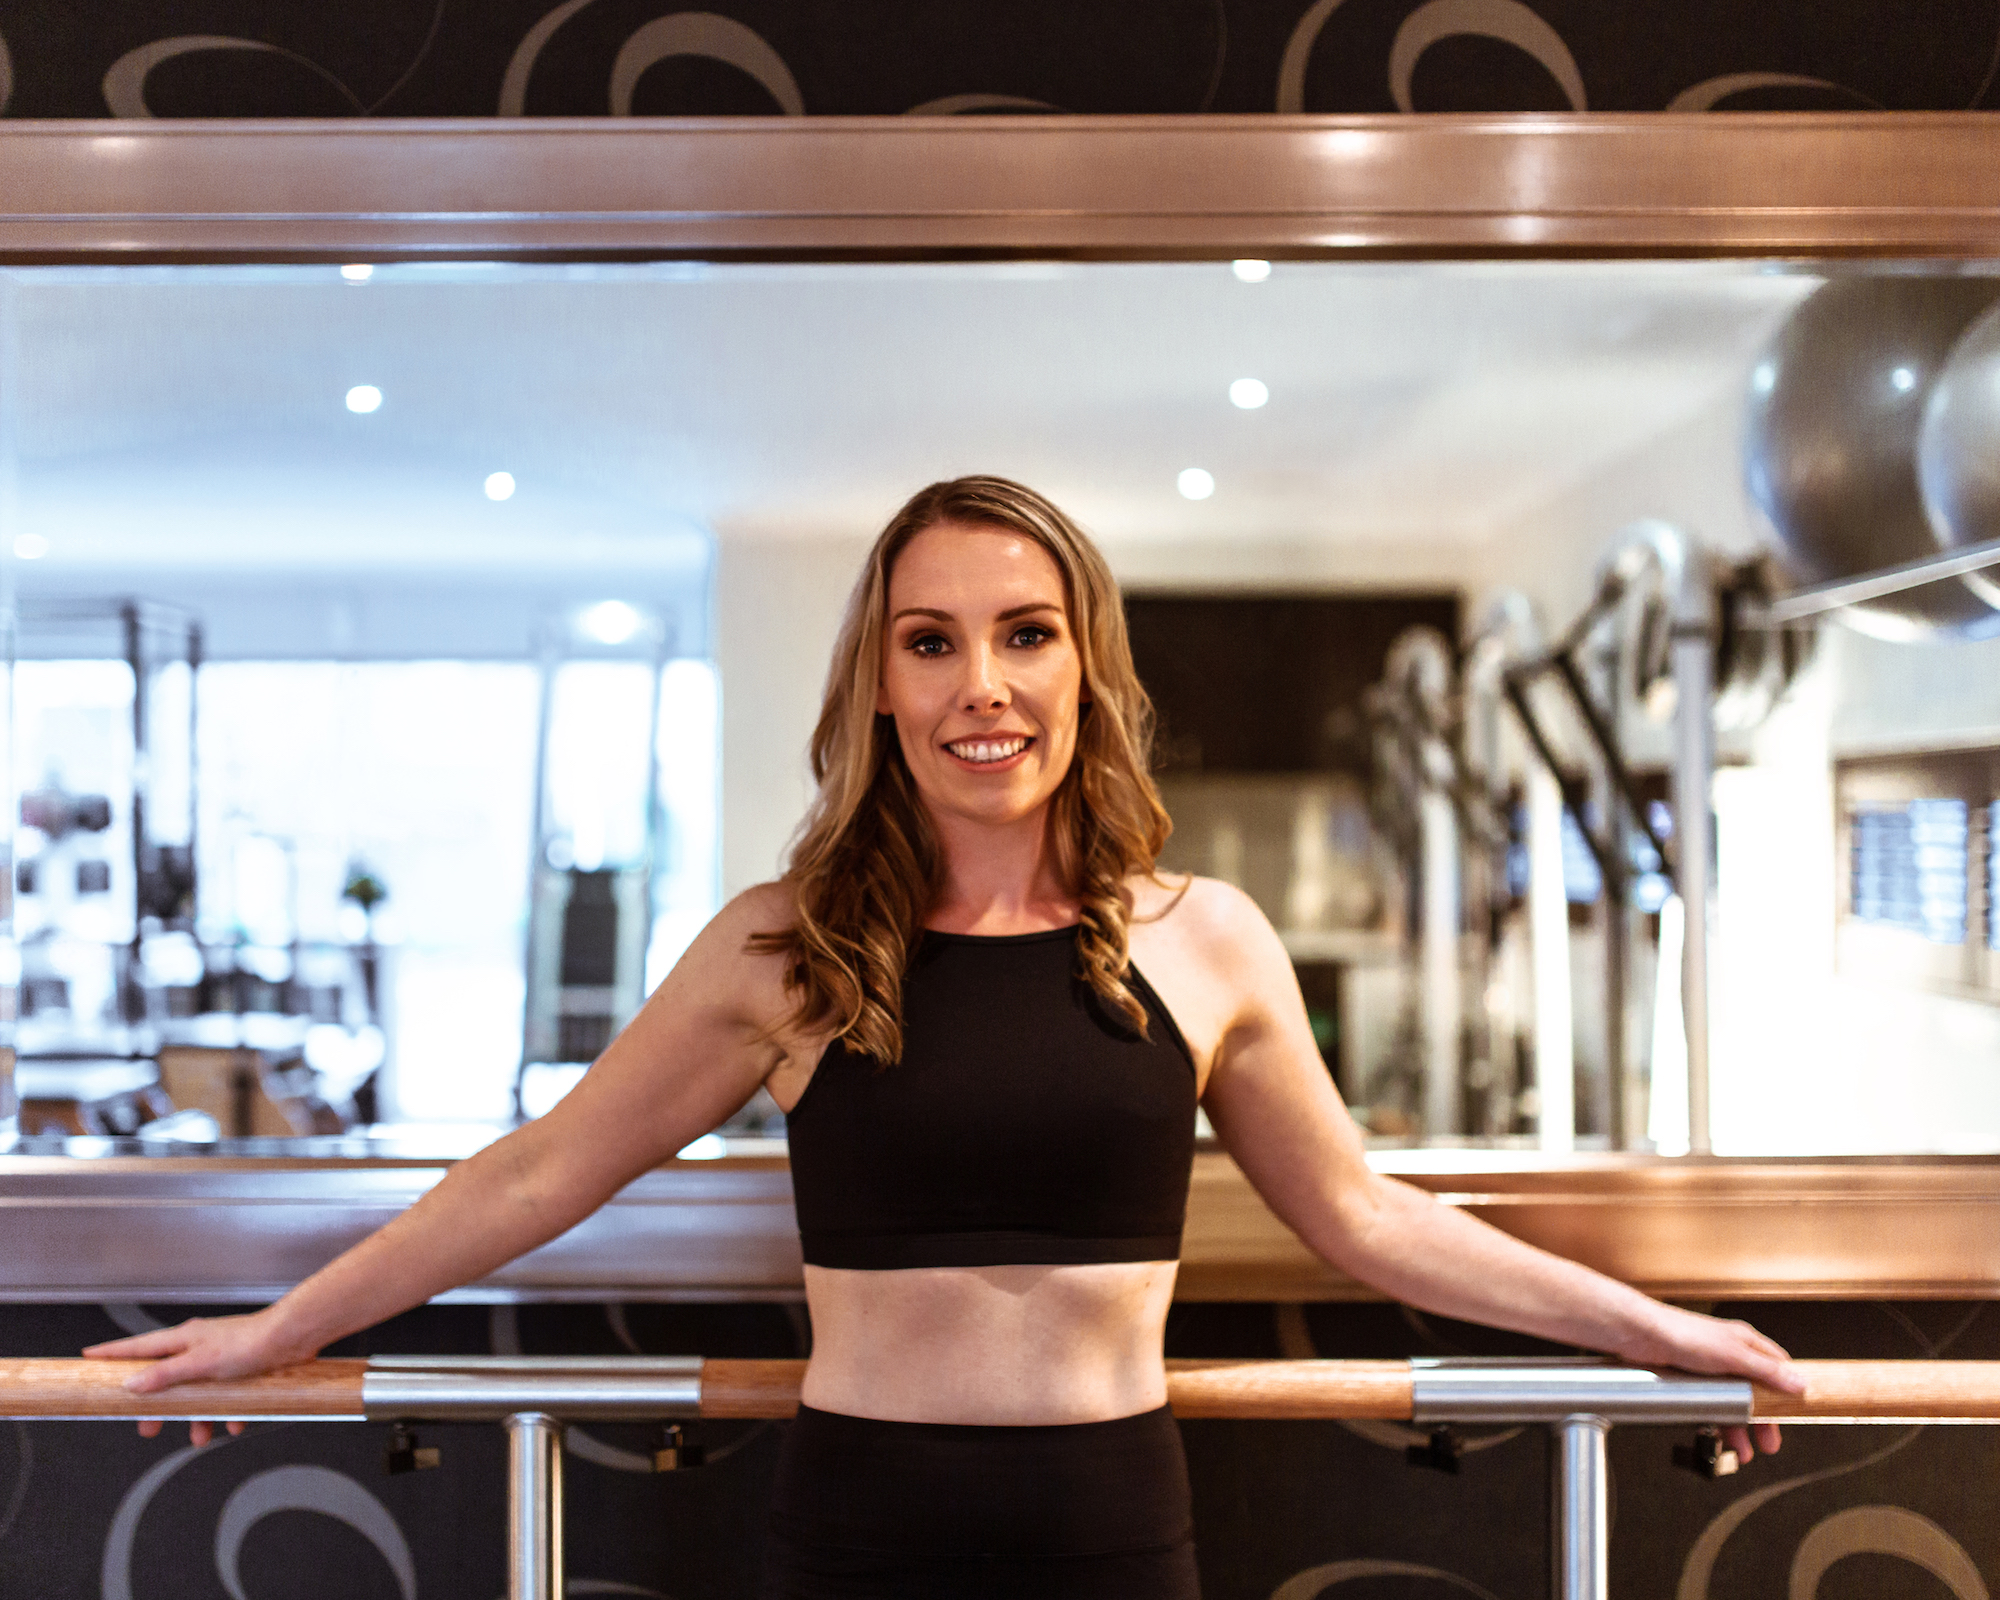 Kate wears the  Coco Crop  and  Piper 7/8 Legging  in Black.